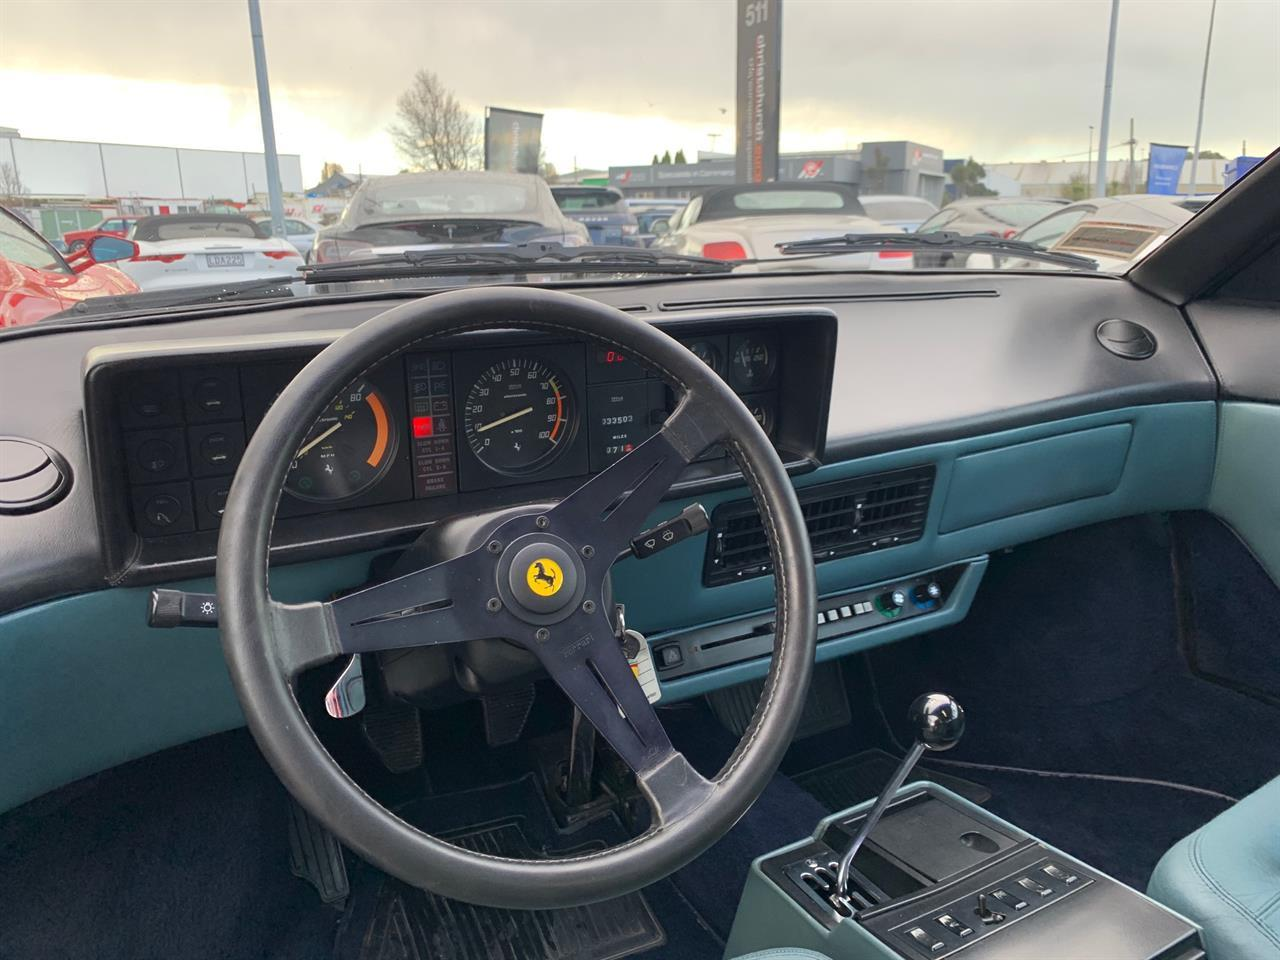 image-8, 1982 Ferrari Mondial 8 4 Seater Coupe at Christchurch